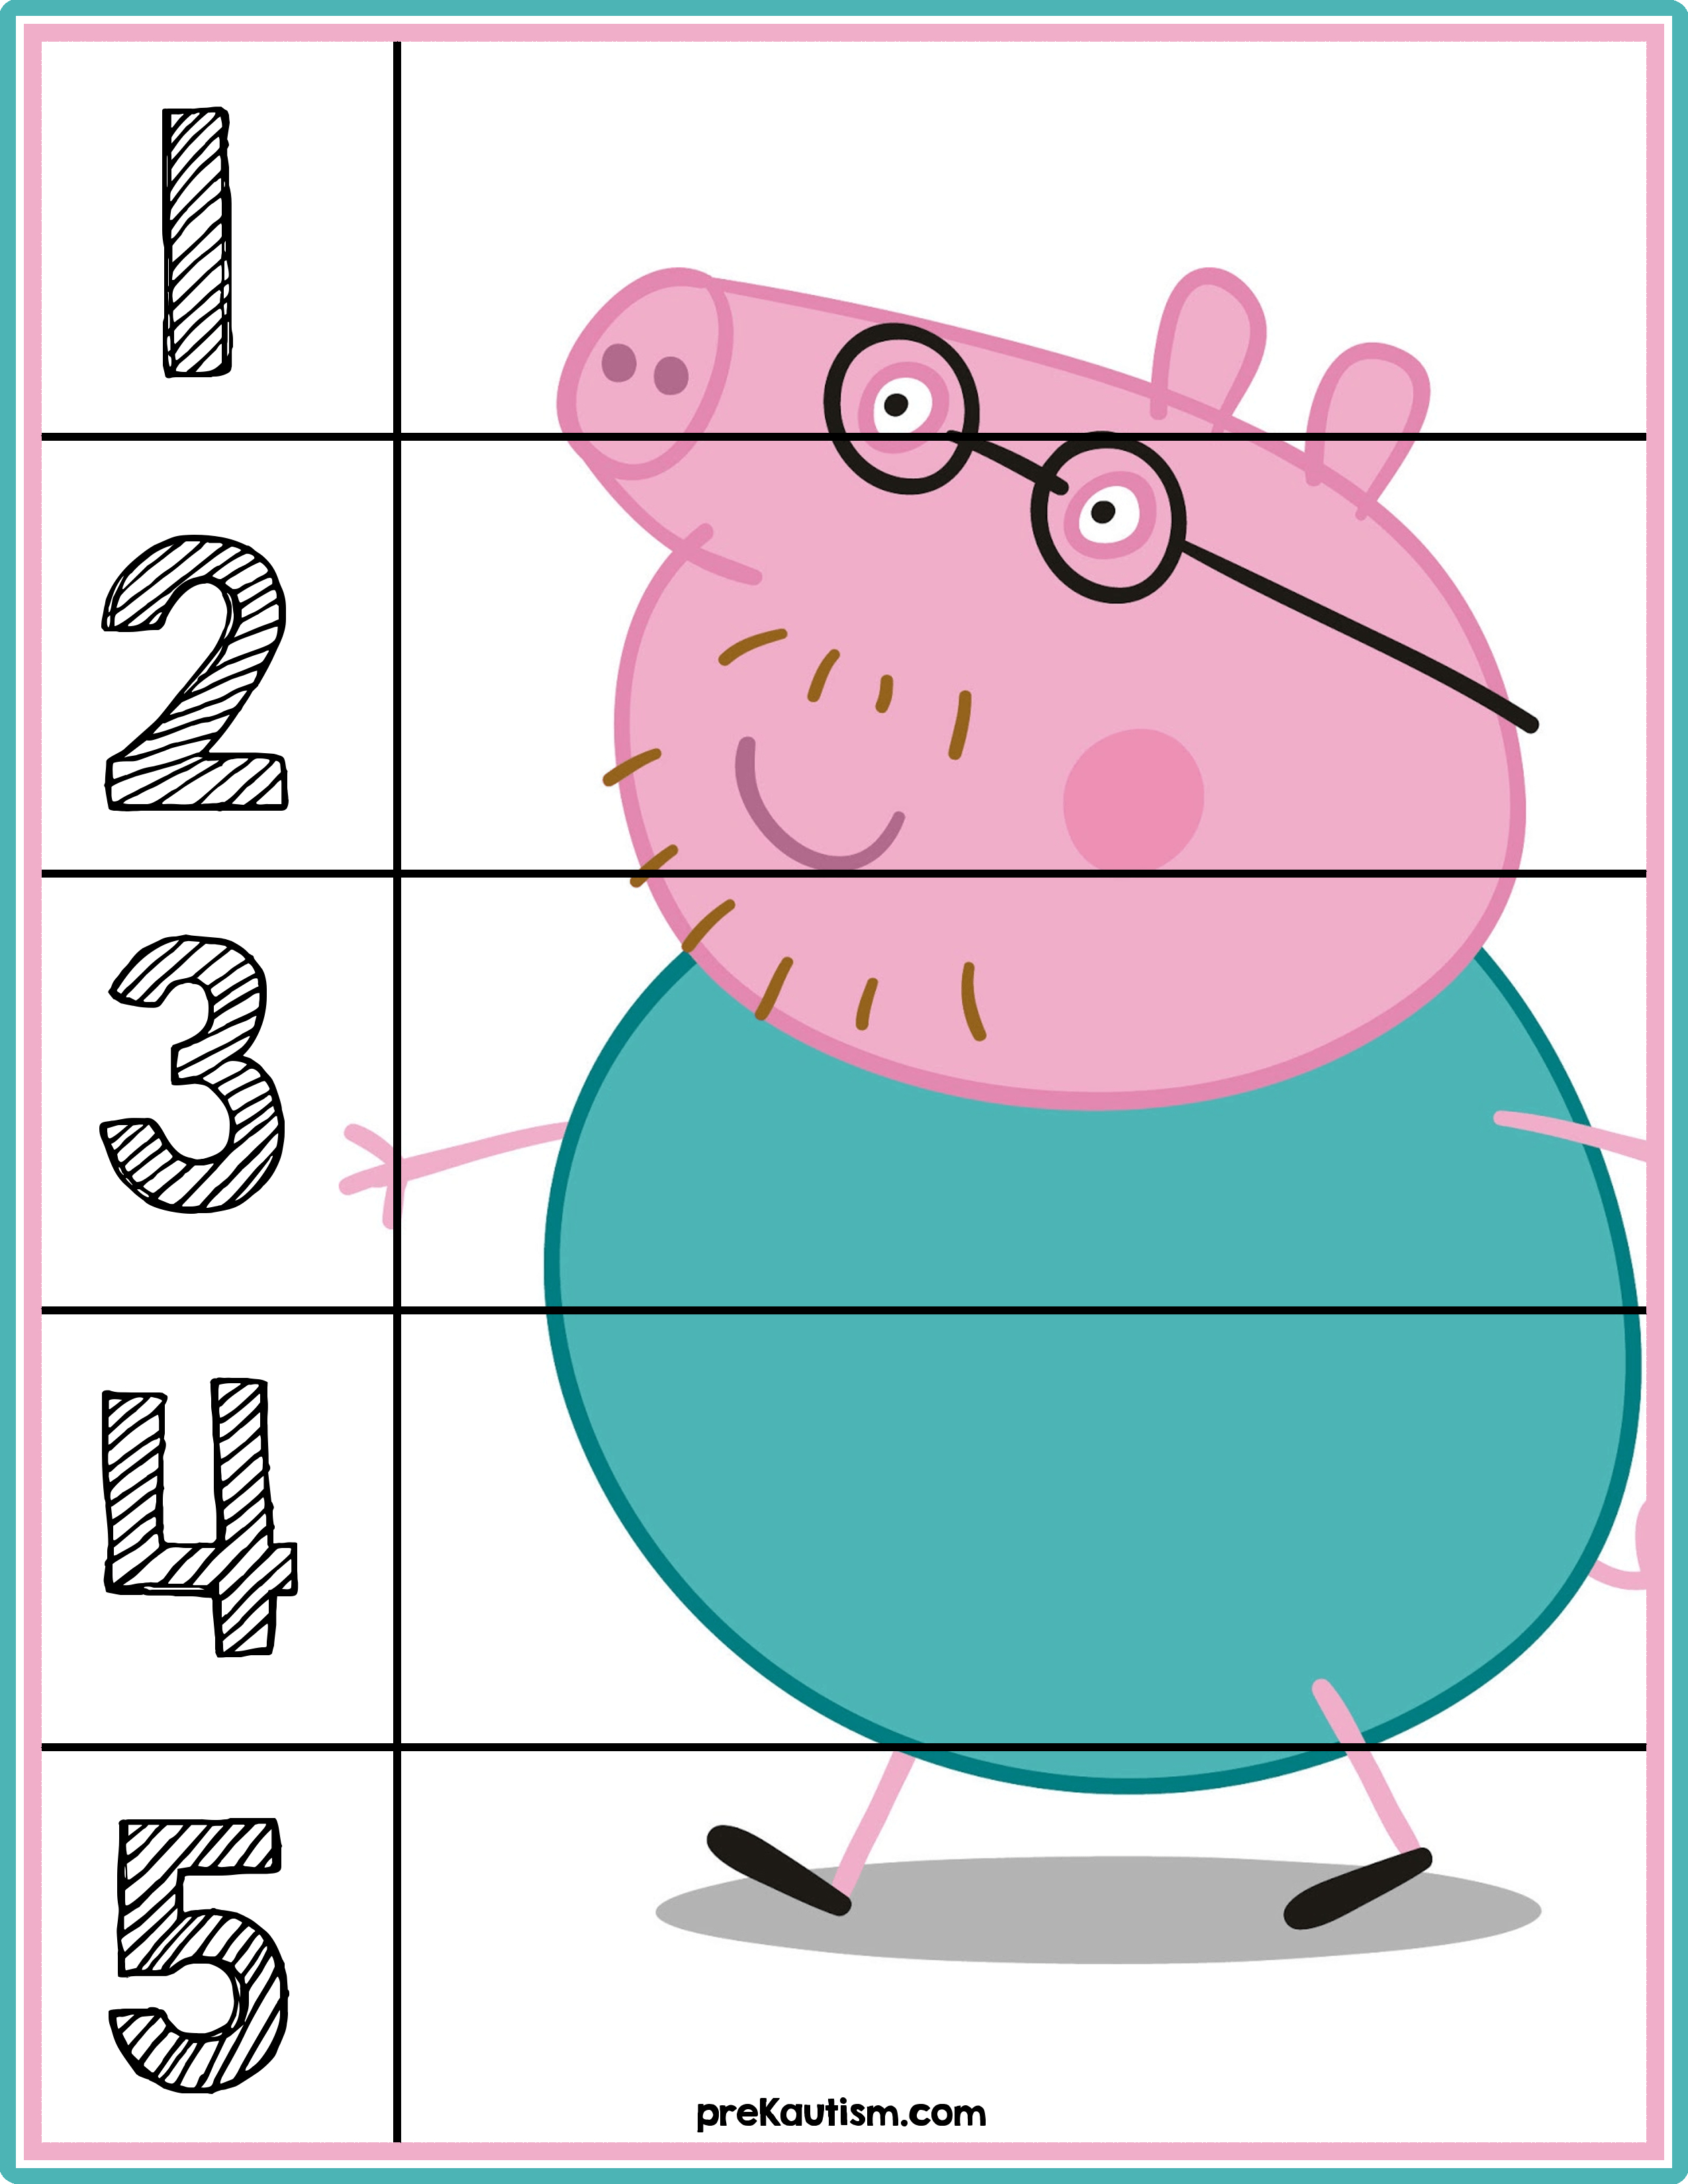 Peppa Pig Number Puzzles #'s 1-5 | Autism Activities For Ages 3-5 - Printable Puzzles For Toddlers